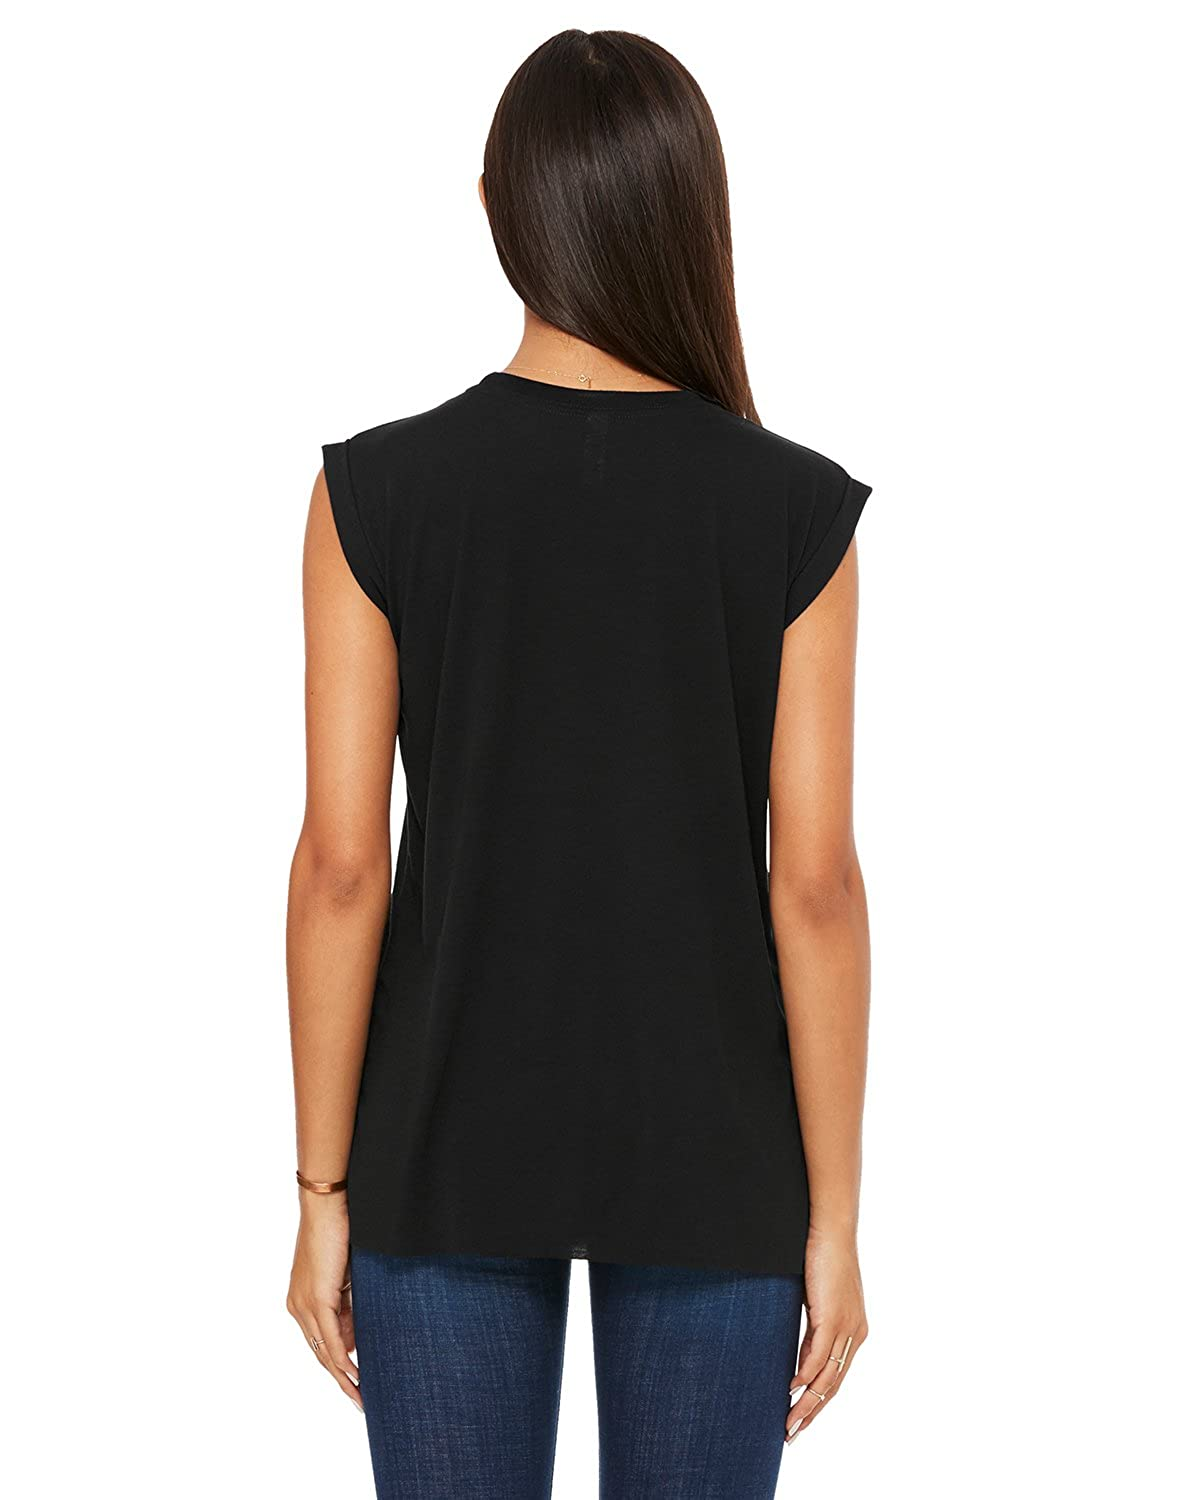 636e2653913 Bella + Canvas Women s Flowy Muscle Tee with Rolled Cuff at Amazon Women s  Clothing store